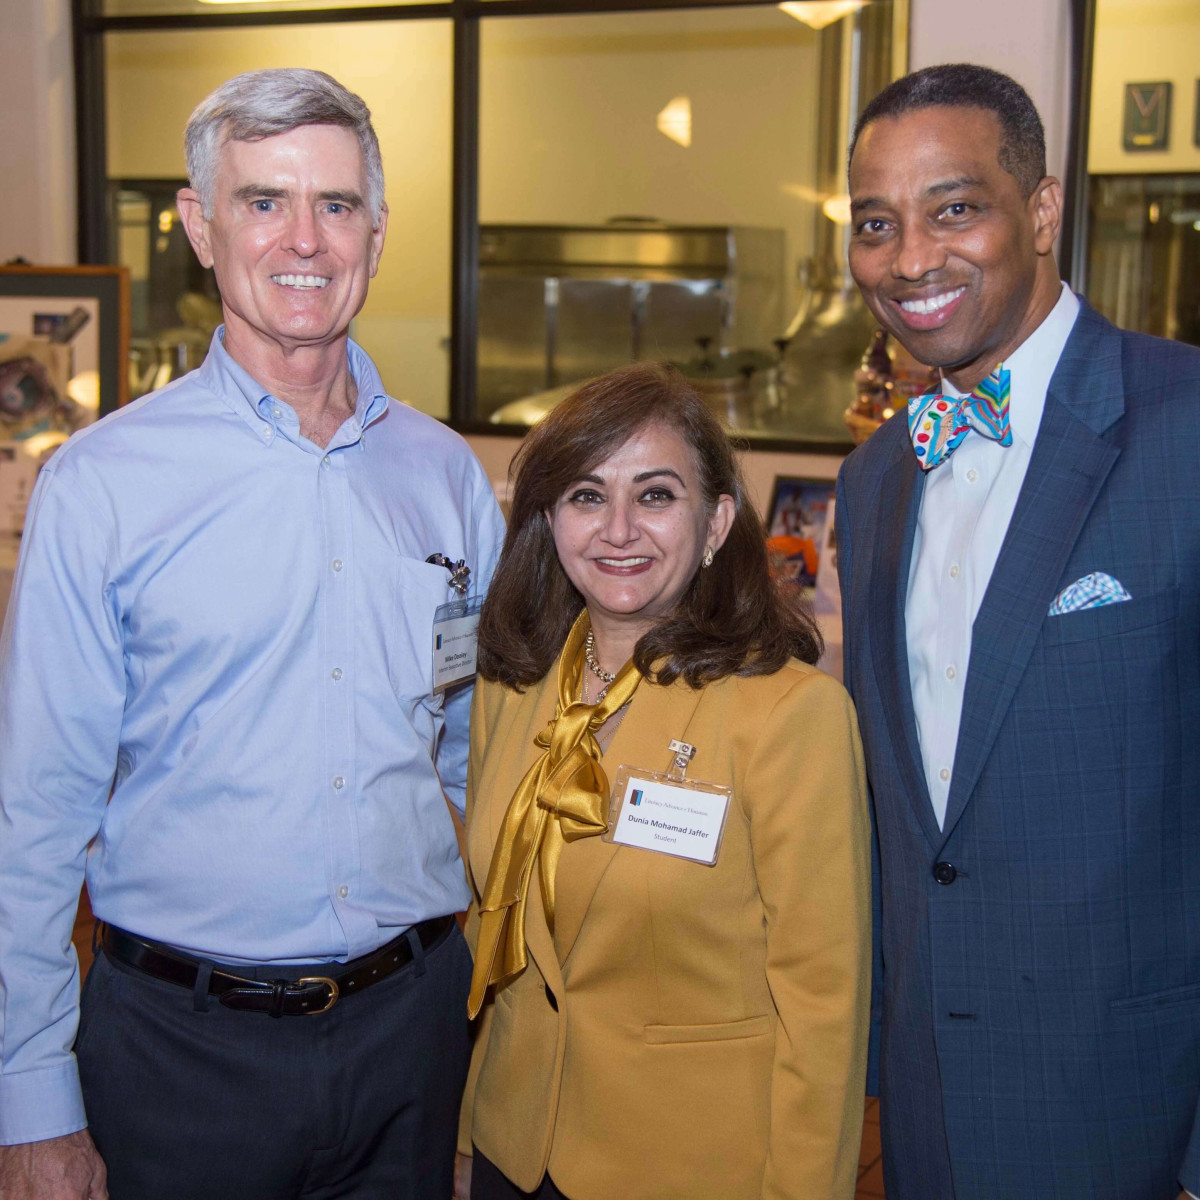 Scrabble in the City, Houston, 9/16, Mike Dooley, Dunia Mohamad Jaffer, Khambrel Marshall